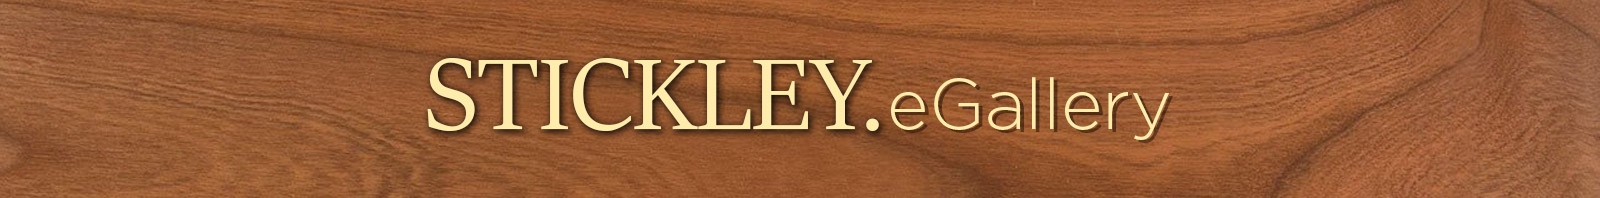 Stickley egallery.jpg